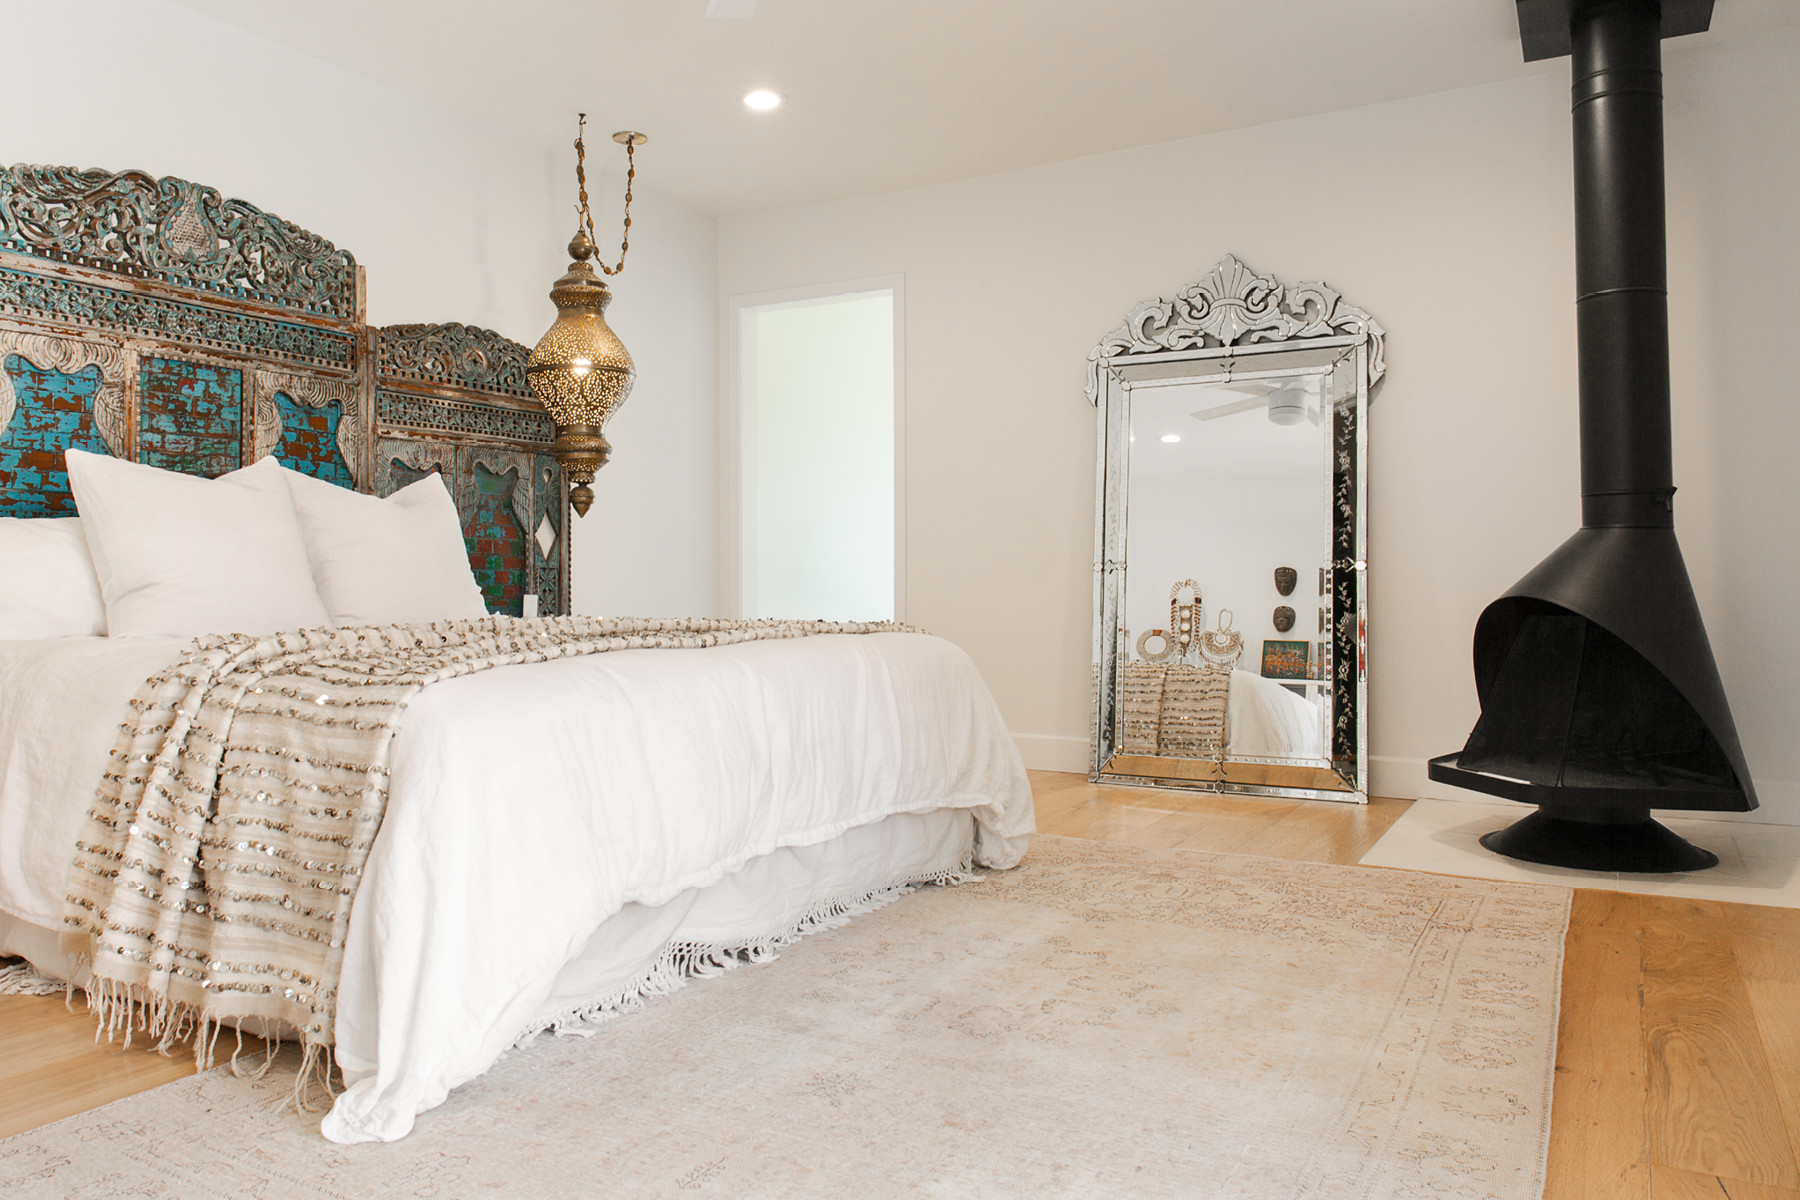 With thoughtgul, vintage finds from Bali, Morocco, and Turkey, the main bedroom is a peaceful respite.Dunn-EdwardsPaint | Antique Headboard |Serena & Lily Bedding | Vintage Mirror | Vintage Throw Blanket | Vintage Pendant | Vintage Floor Mirror.